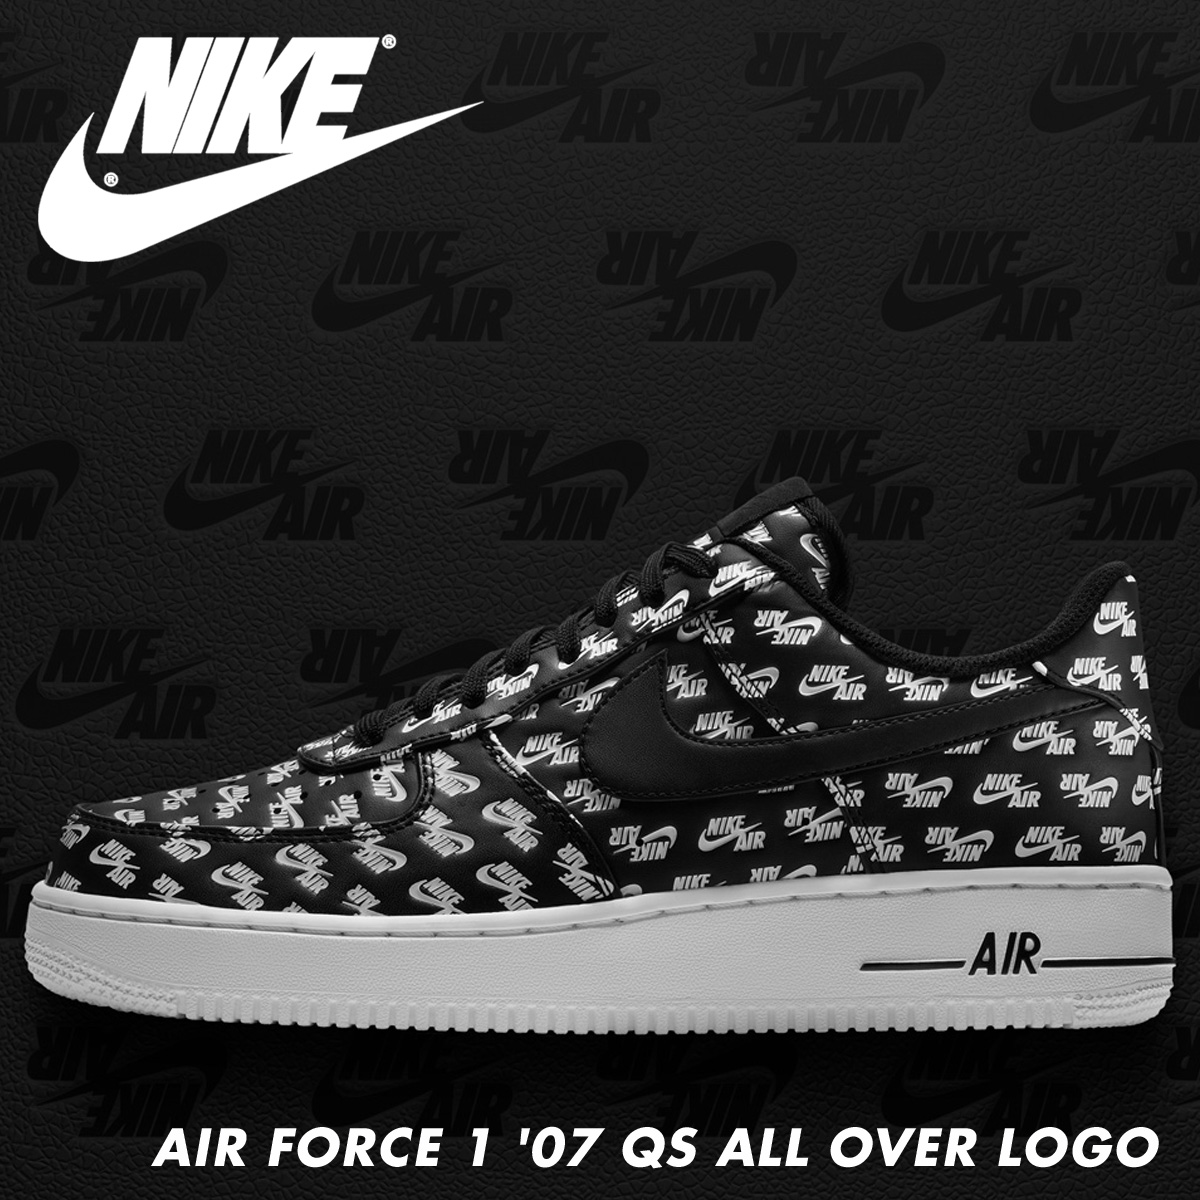 hot sale online e6f21 fd6e2 NIKE AIR FORCE 1 07 QS ALL OVER LOGO Nike air force 1 sneakers men black  AH8462-001  the 4 3 additional arrival